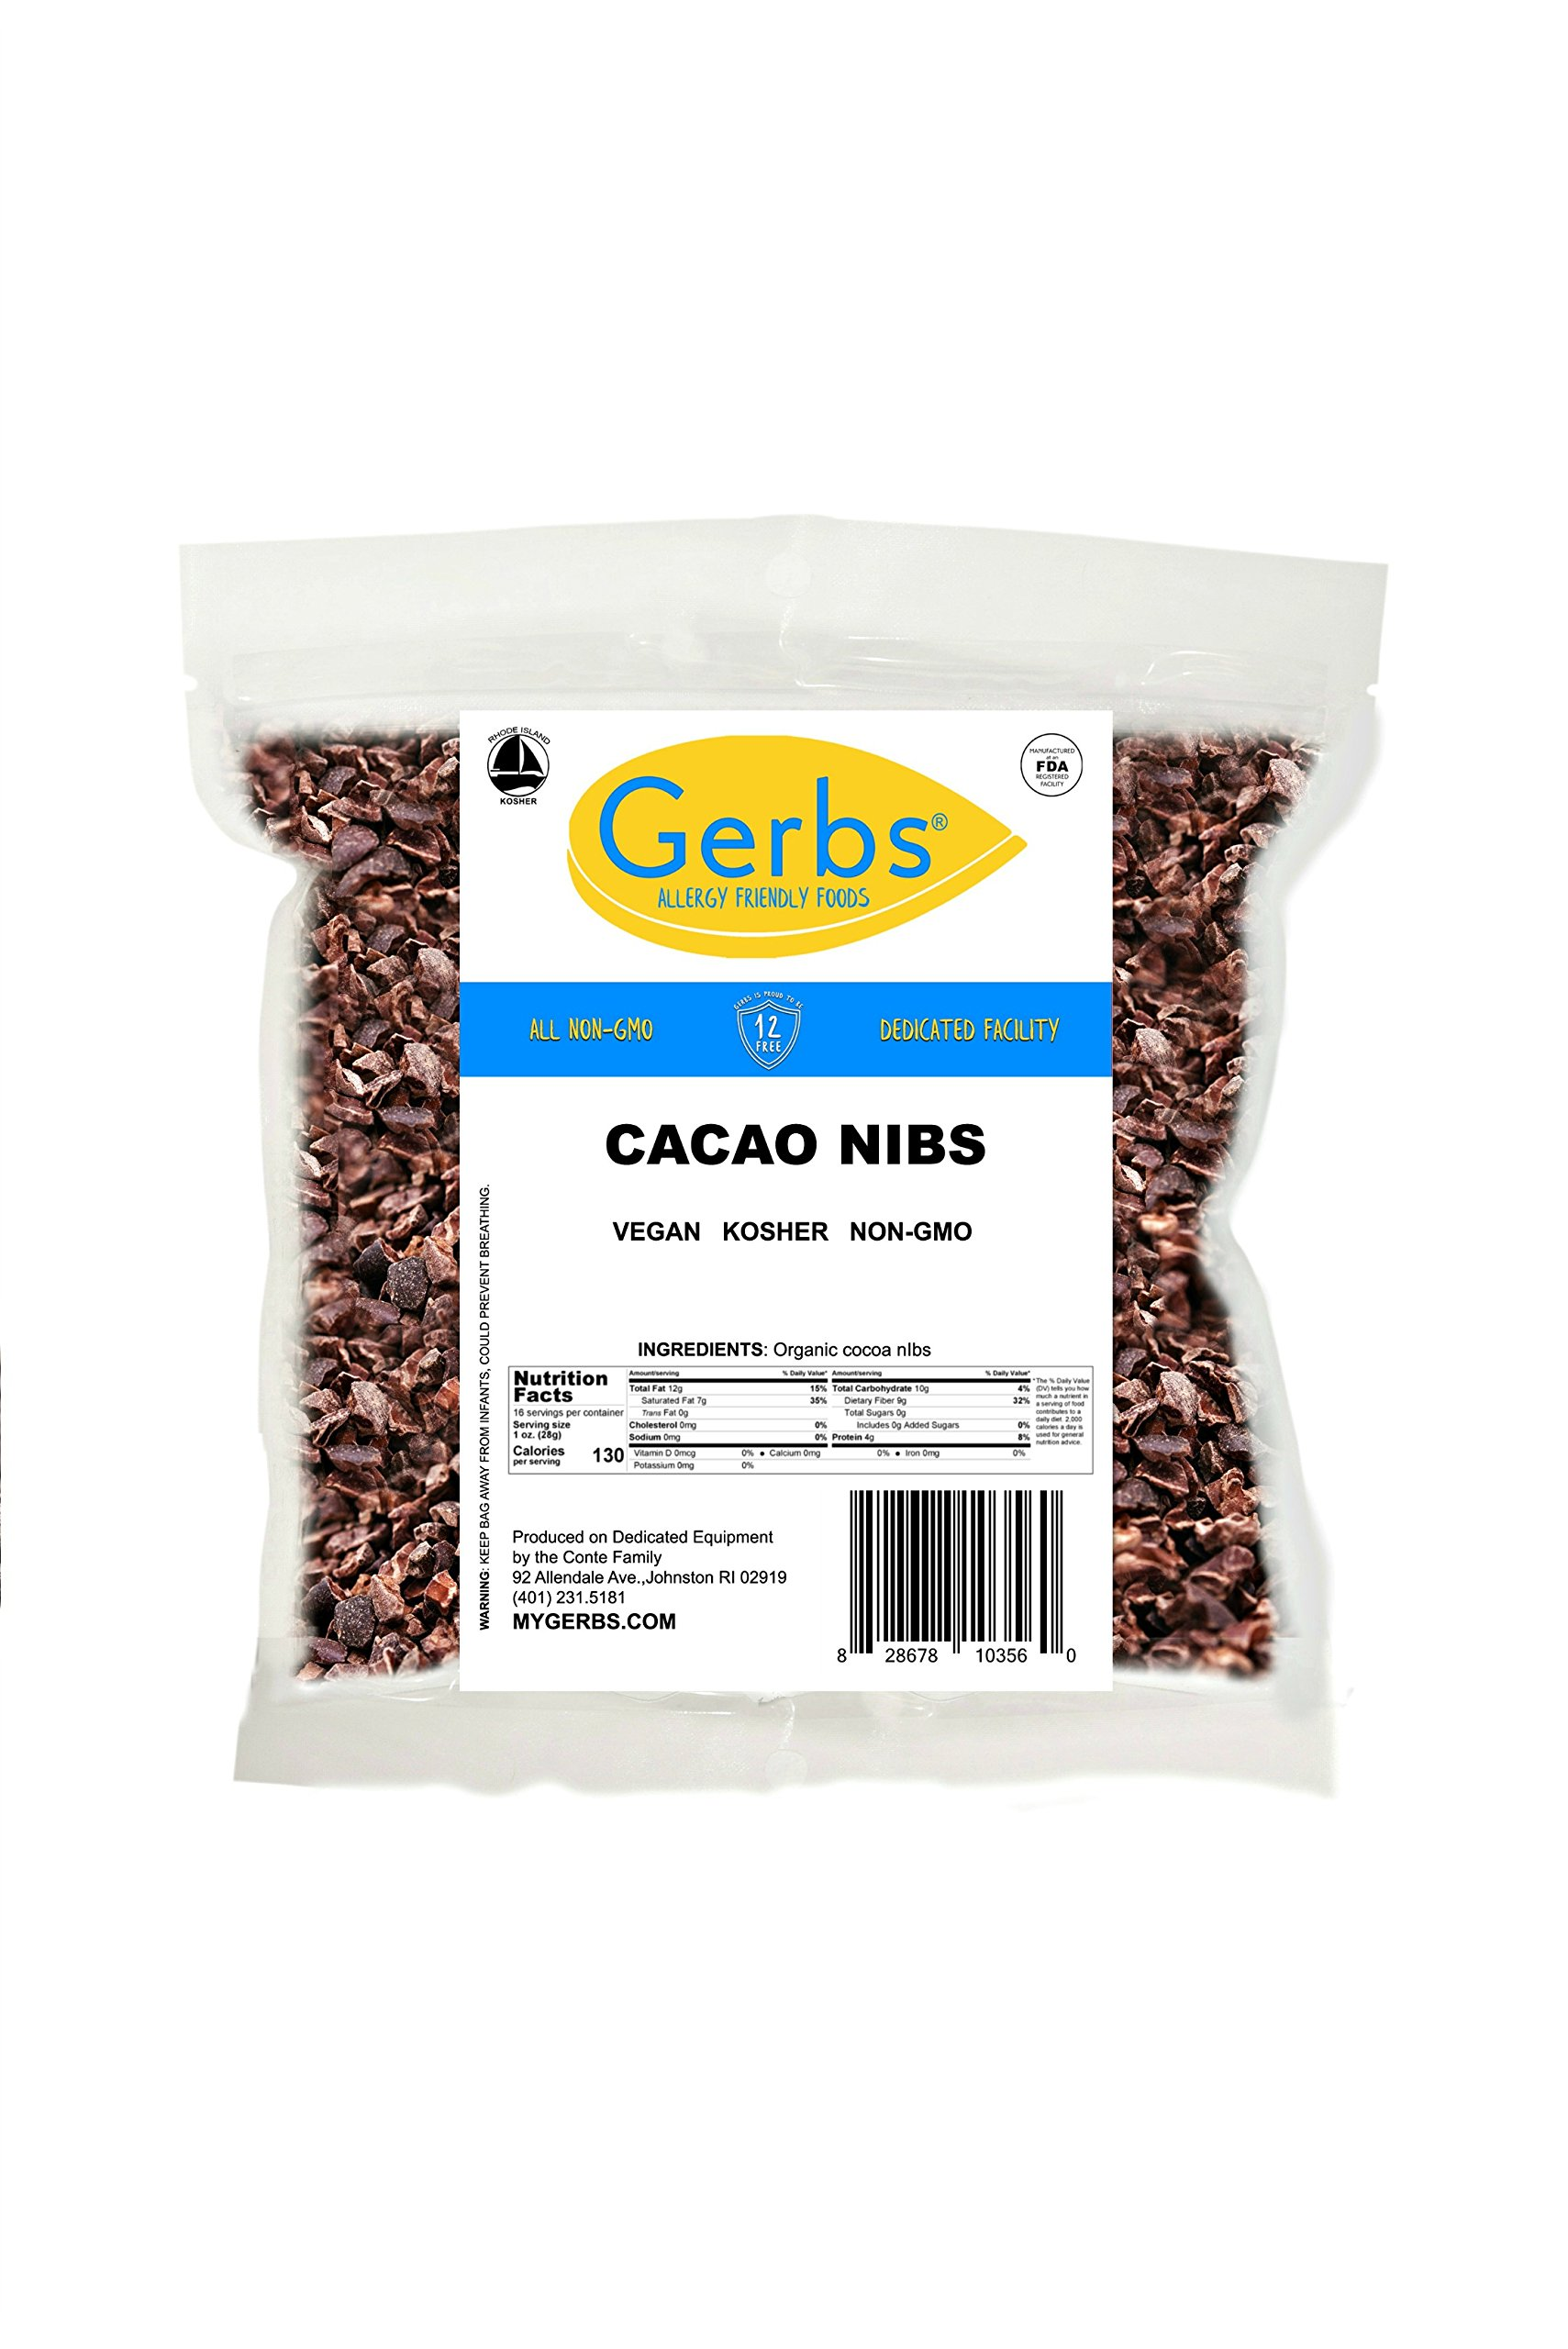 Cacao Nibs, 1 LB - Top 14 Food Allergy Free & NON GMO by Gerbs - Keto Safe -Product of Peru - Packaged in USA by GERBS